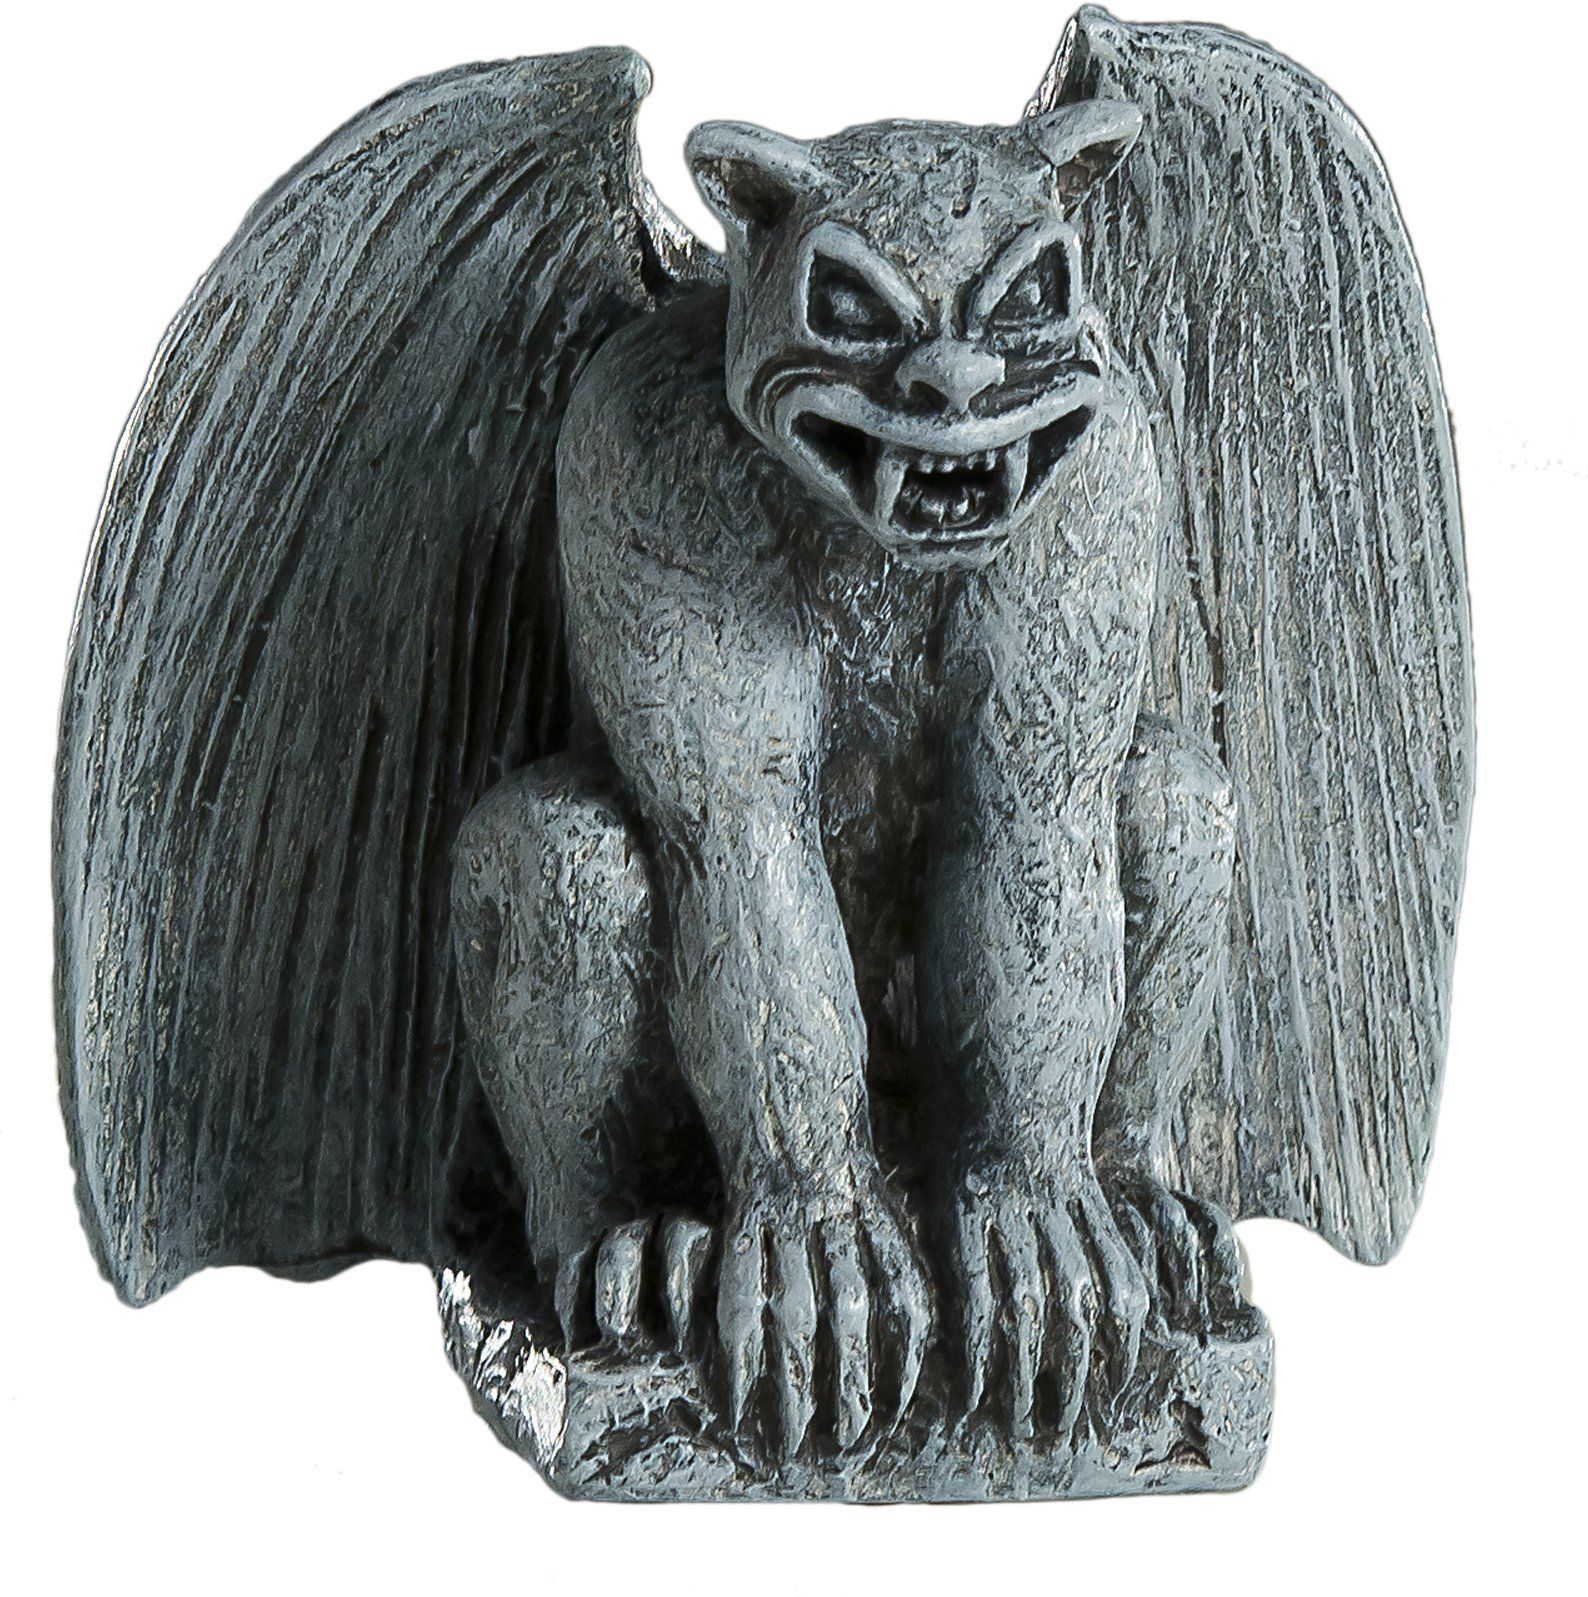 HorrorNaments Gargoyle Series 1 Halloween Christmas Tree